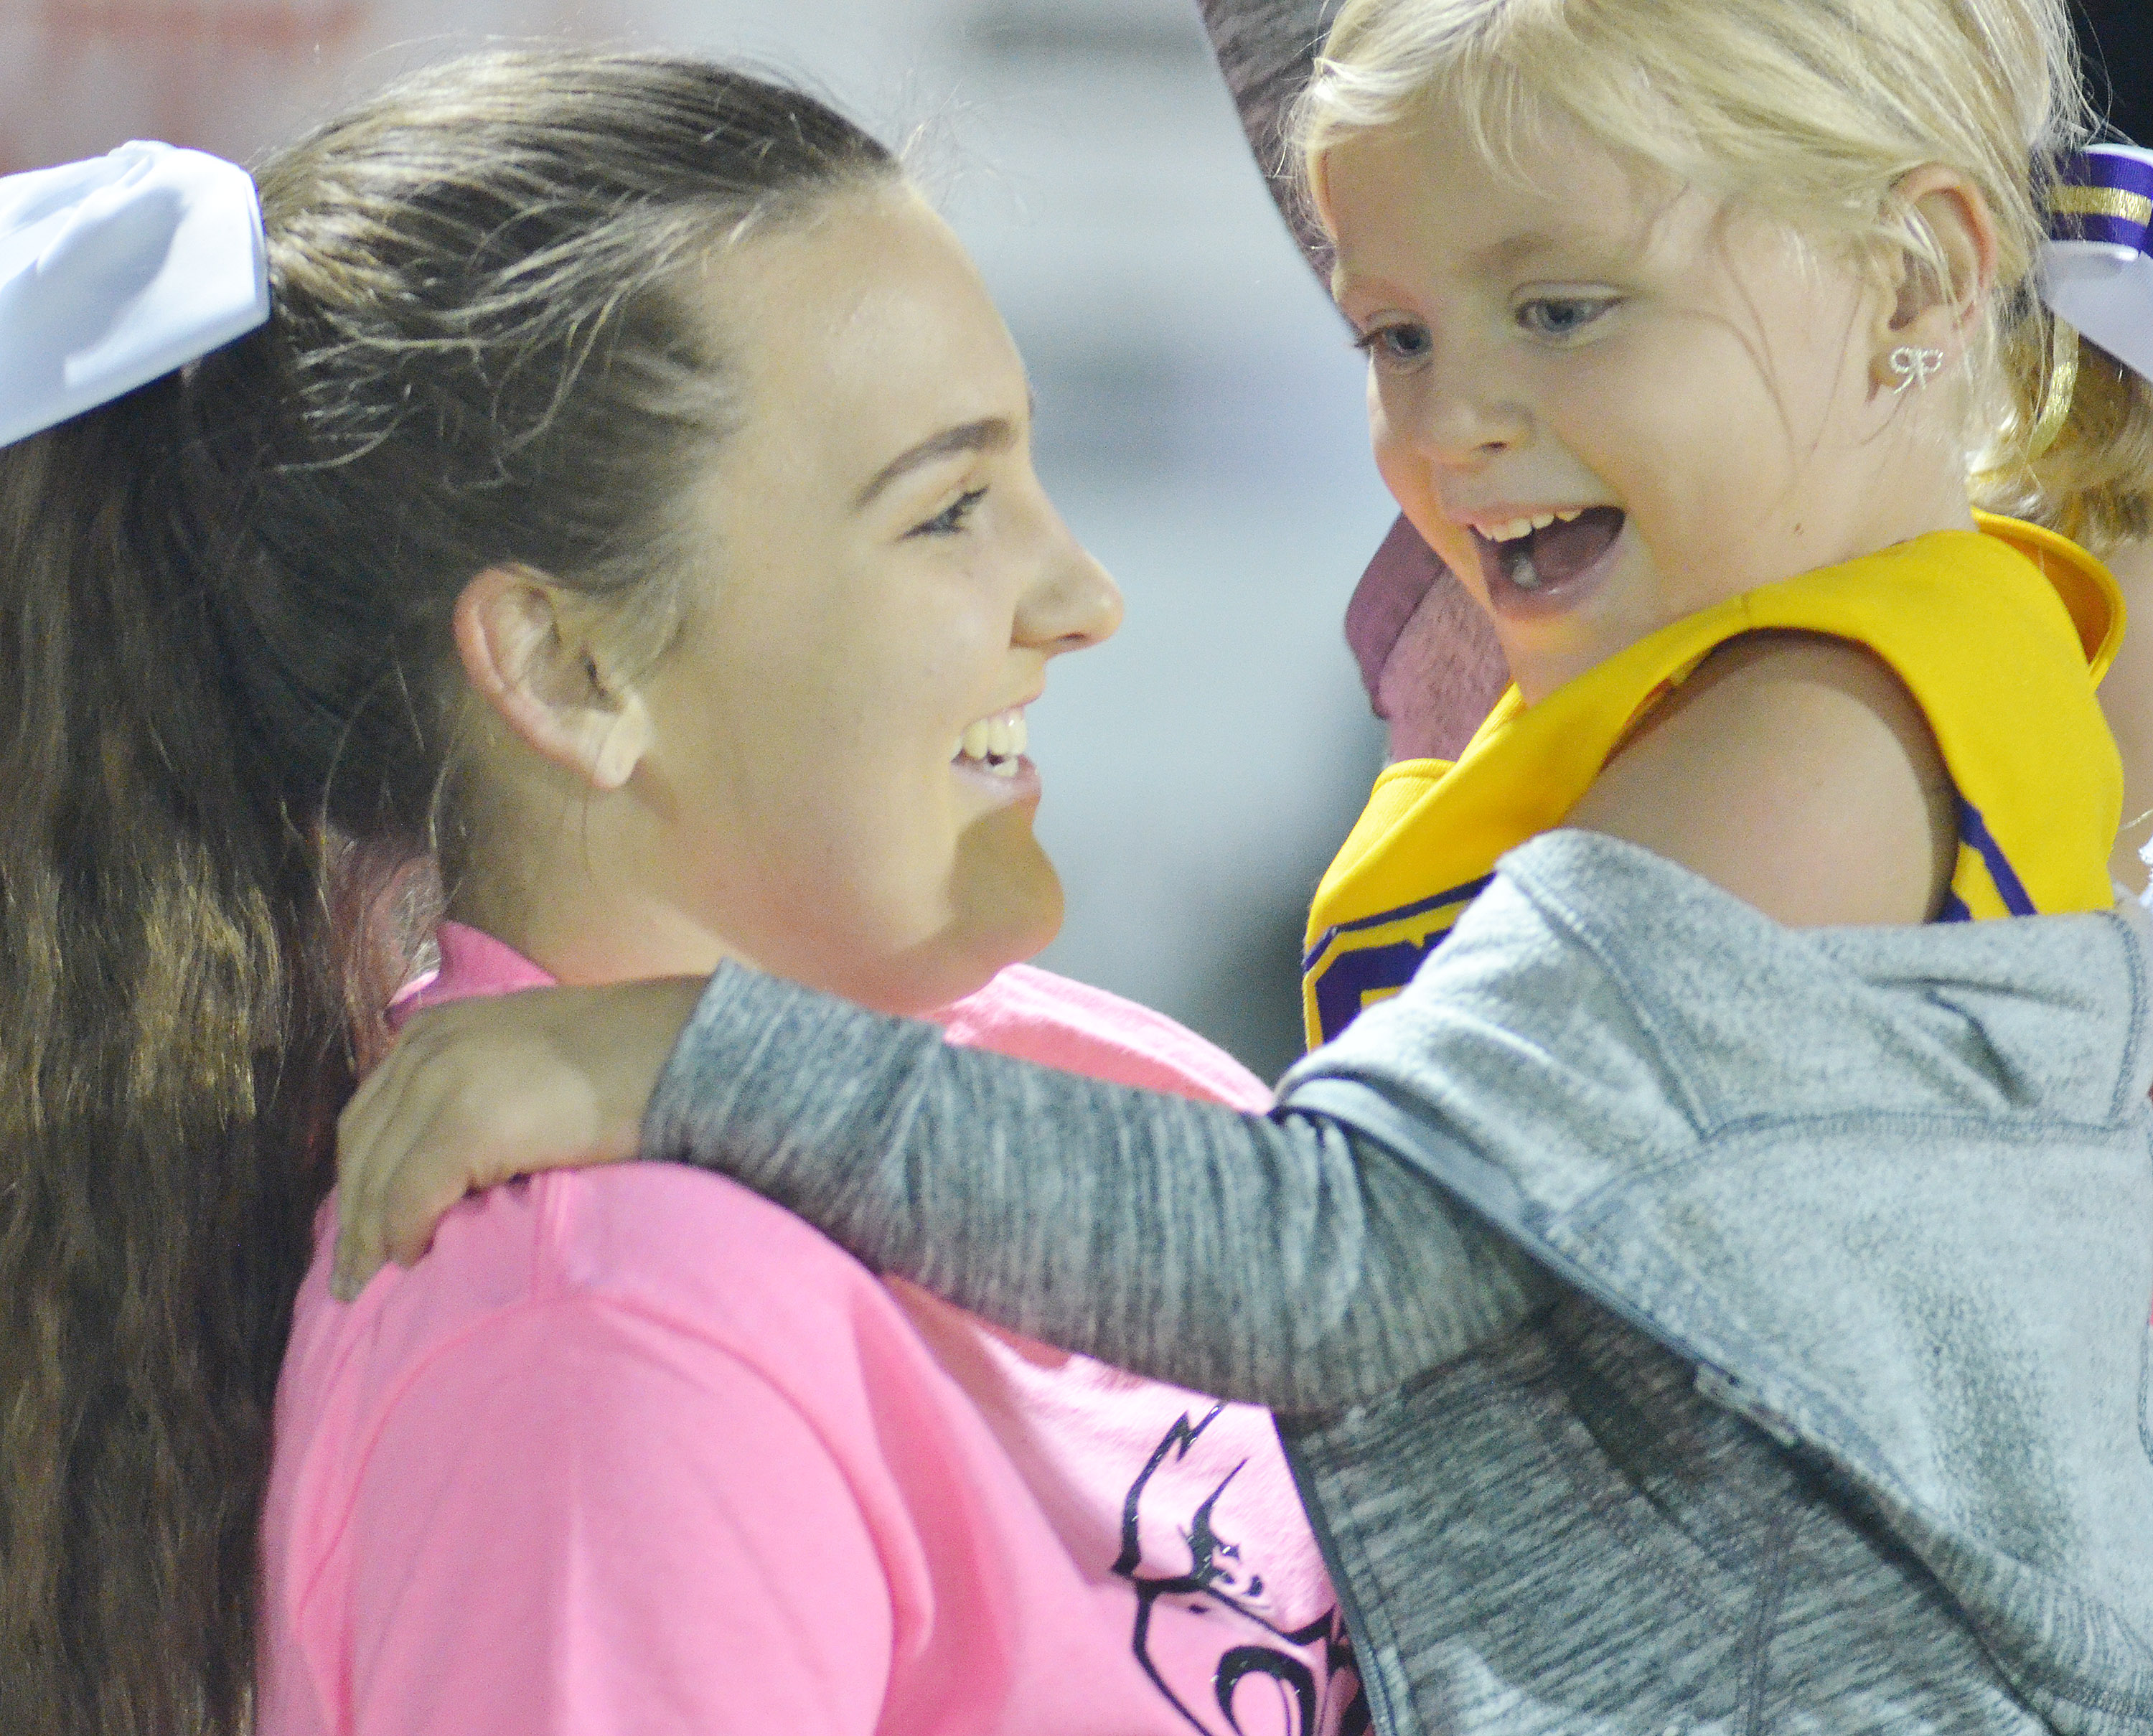 CHS sophomore Haley Morris cheers with Campbellsville Elementary School kindergartener Remi Petett.